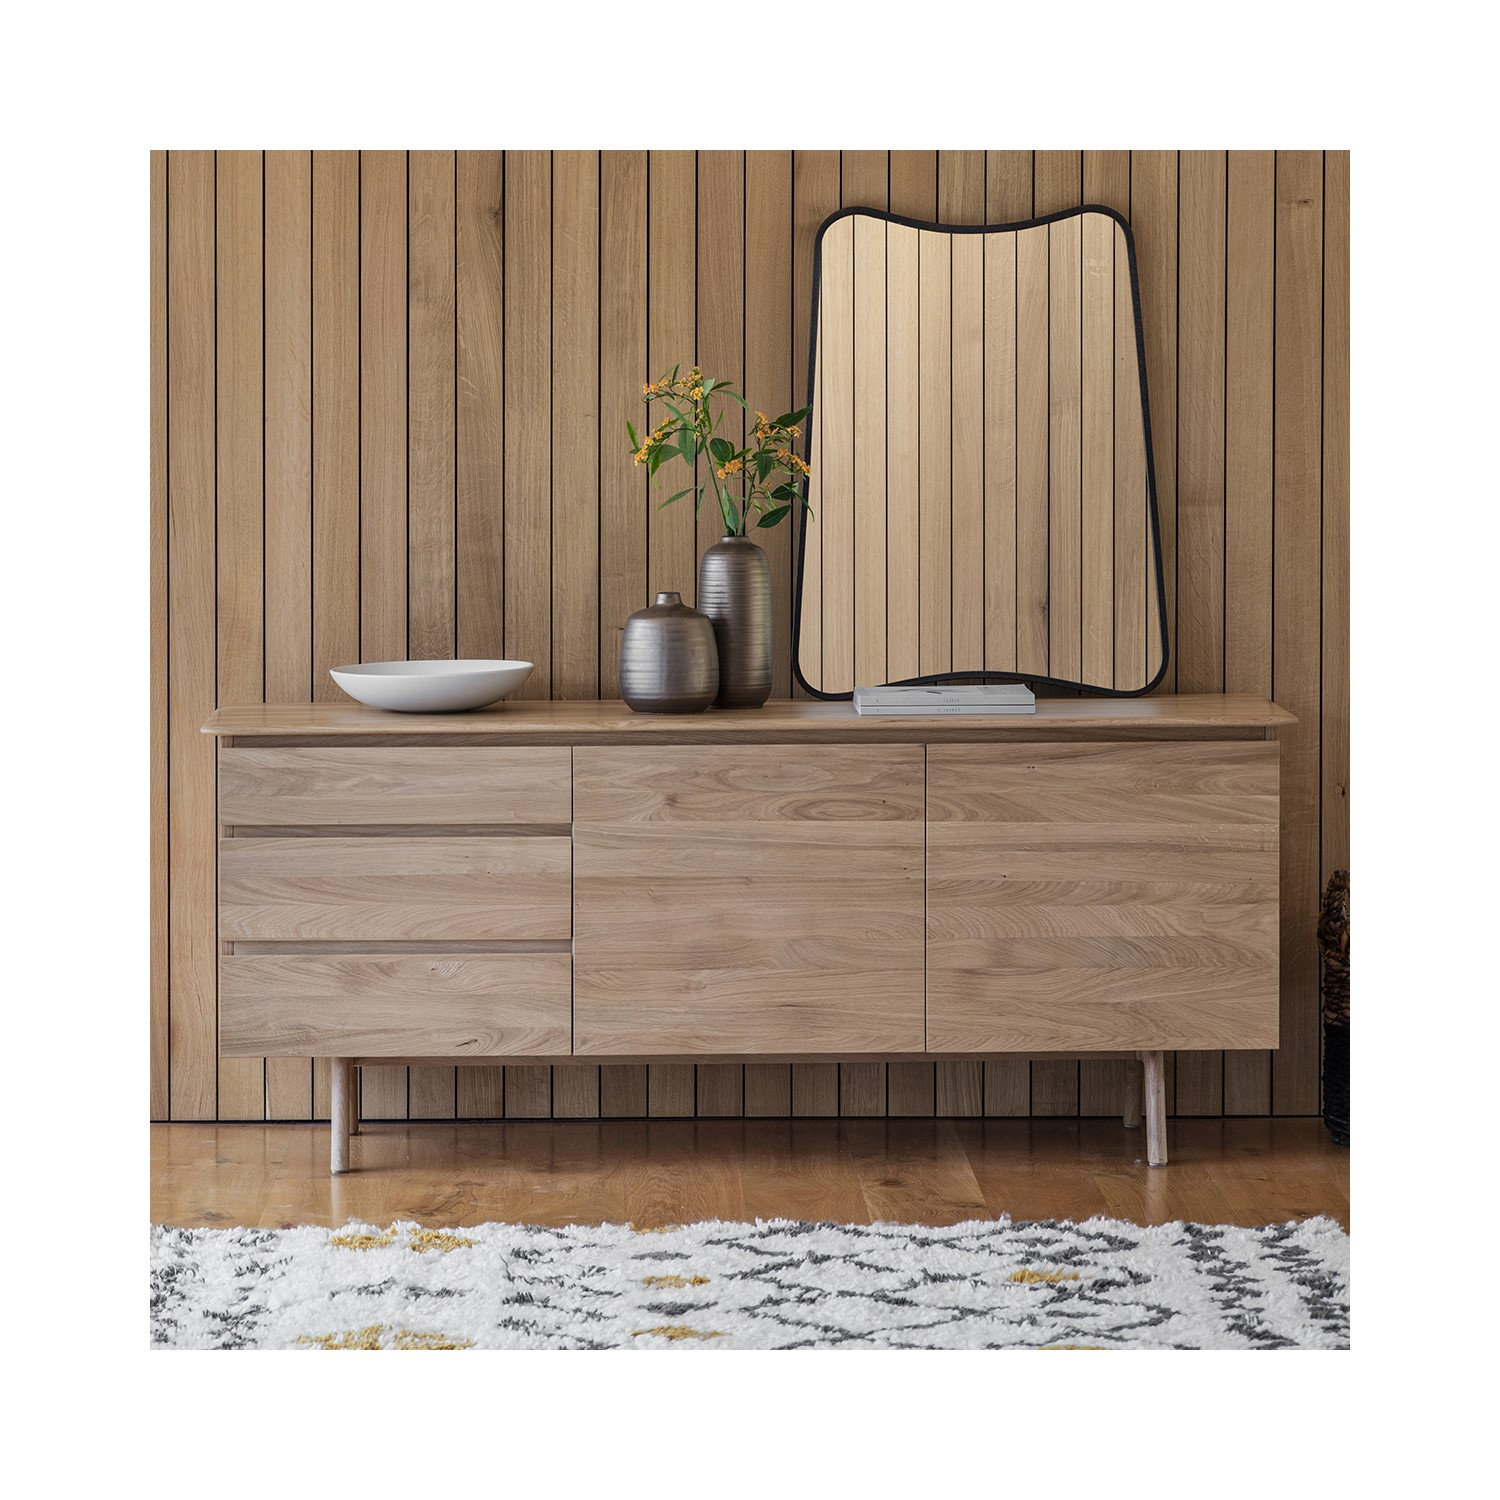 Sideboard Modern Oak Sideboard With Storage - Modern - Caspian House | Furniture123